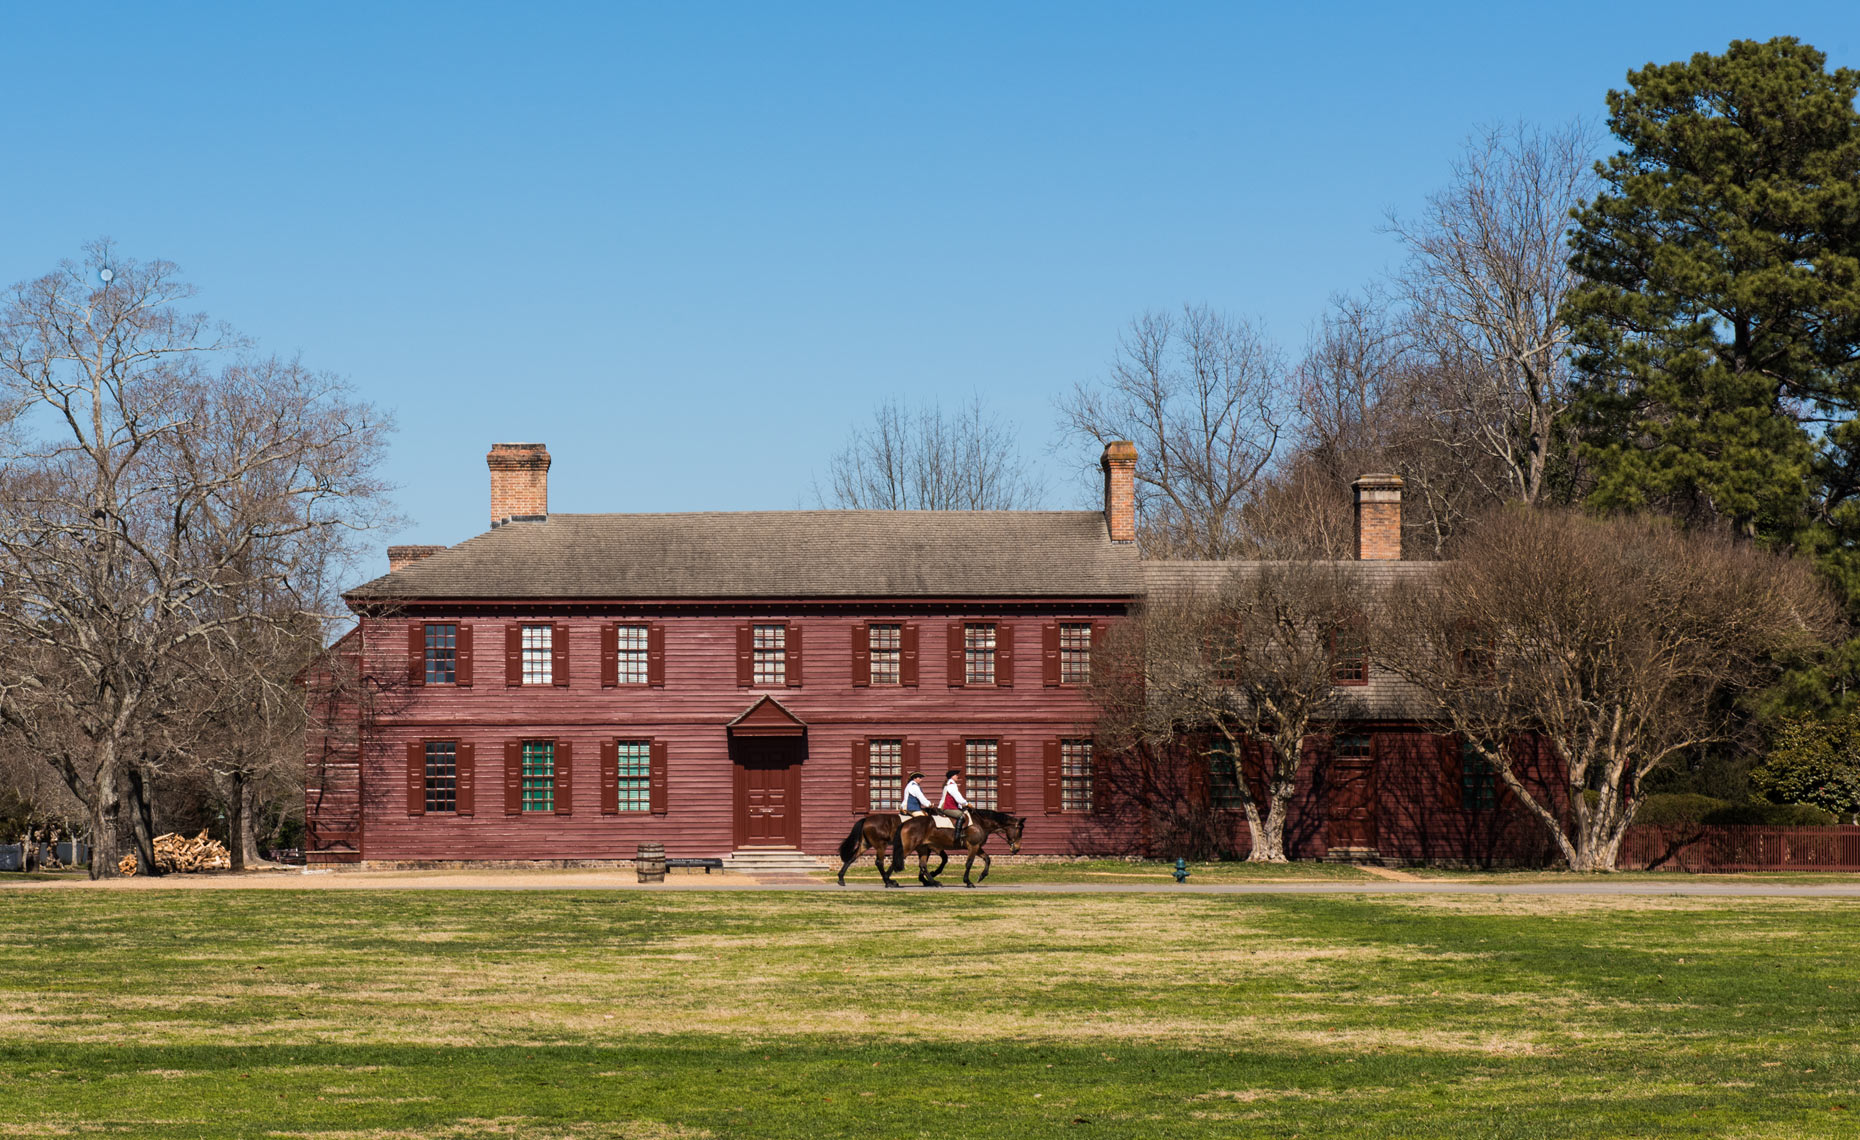 Colton-travel-photography-williamsburg-va-102